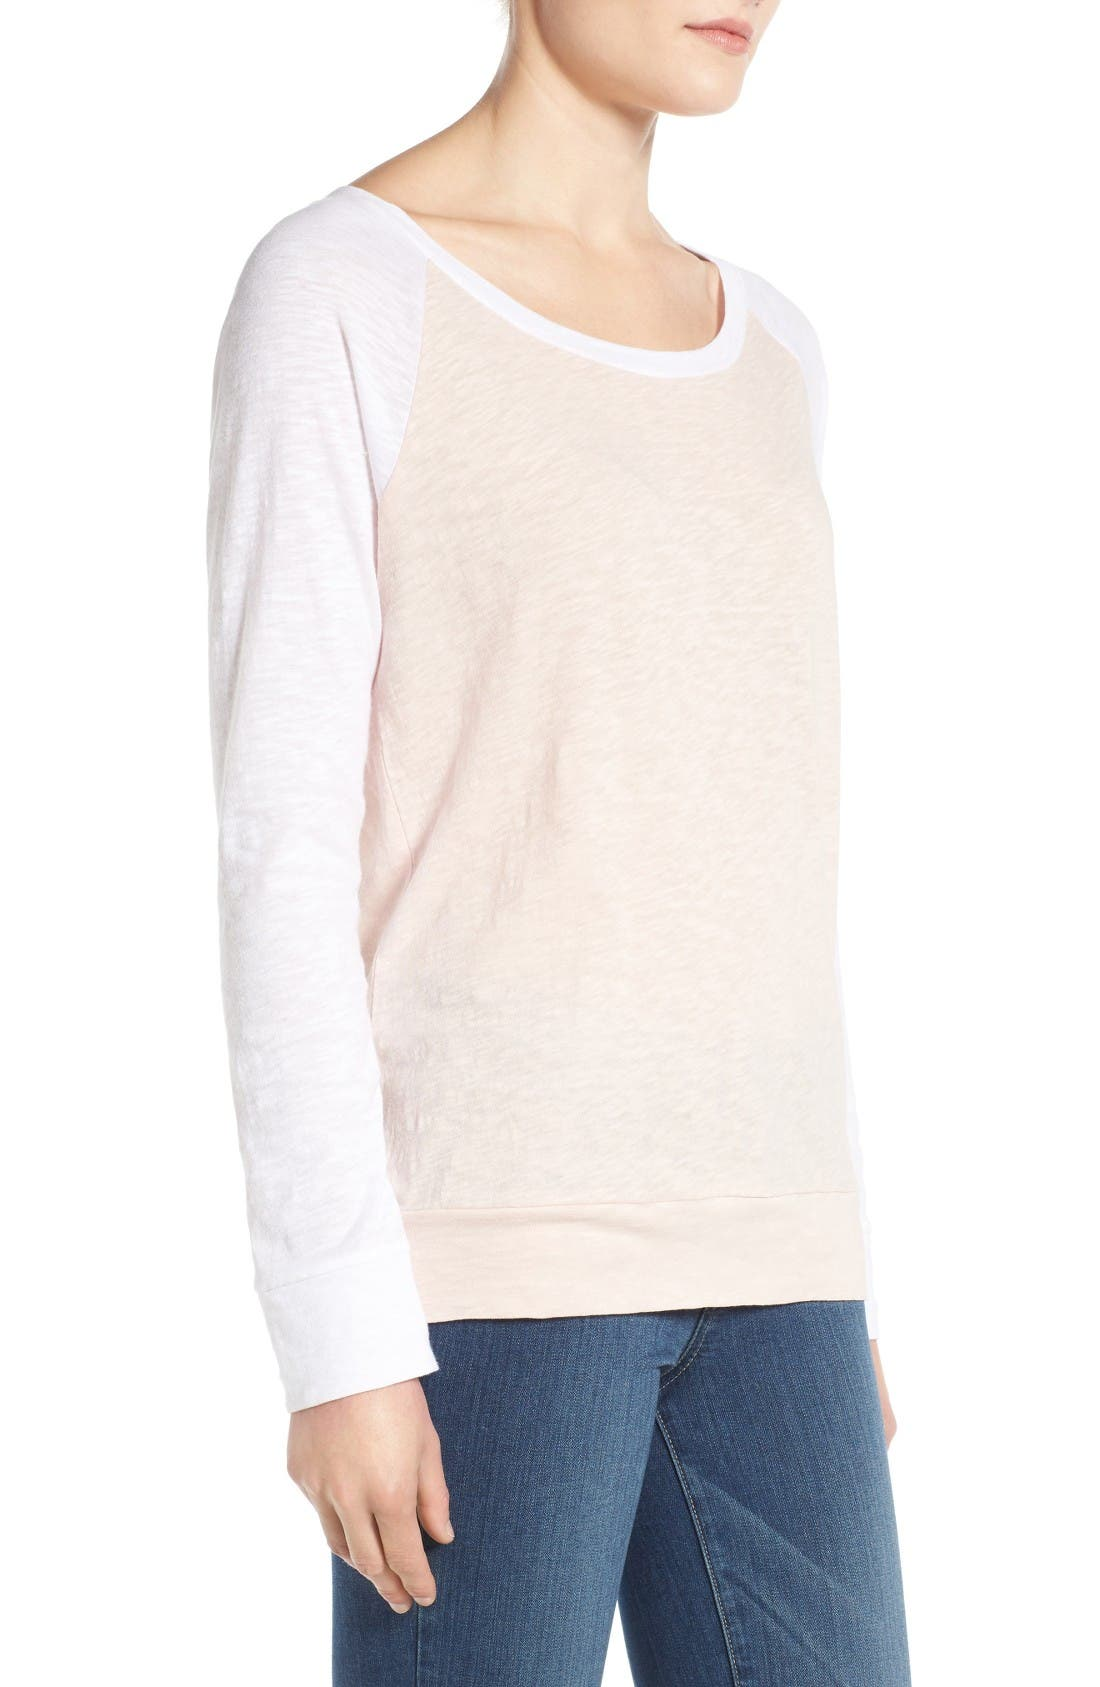 Lightweight Colorblock Cotton Tee,                             Alternate thumbnail 7, color,                             Pink Peach- White Colorblock